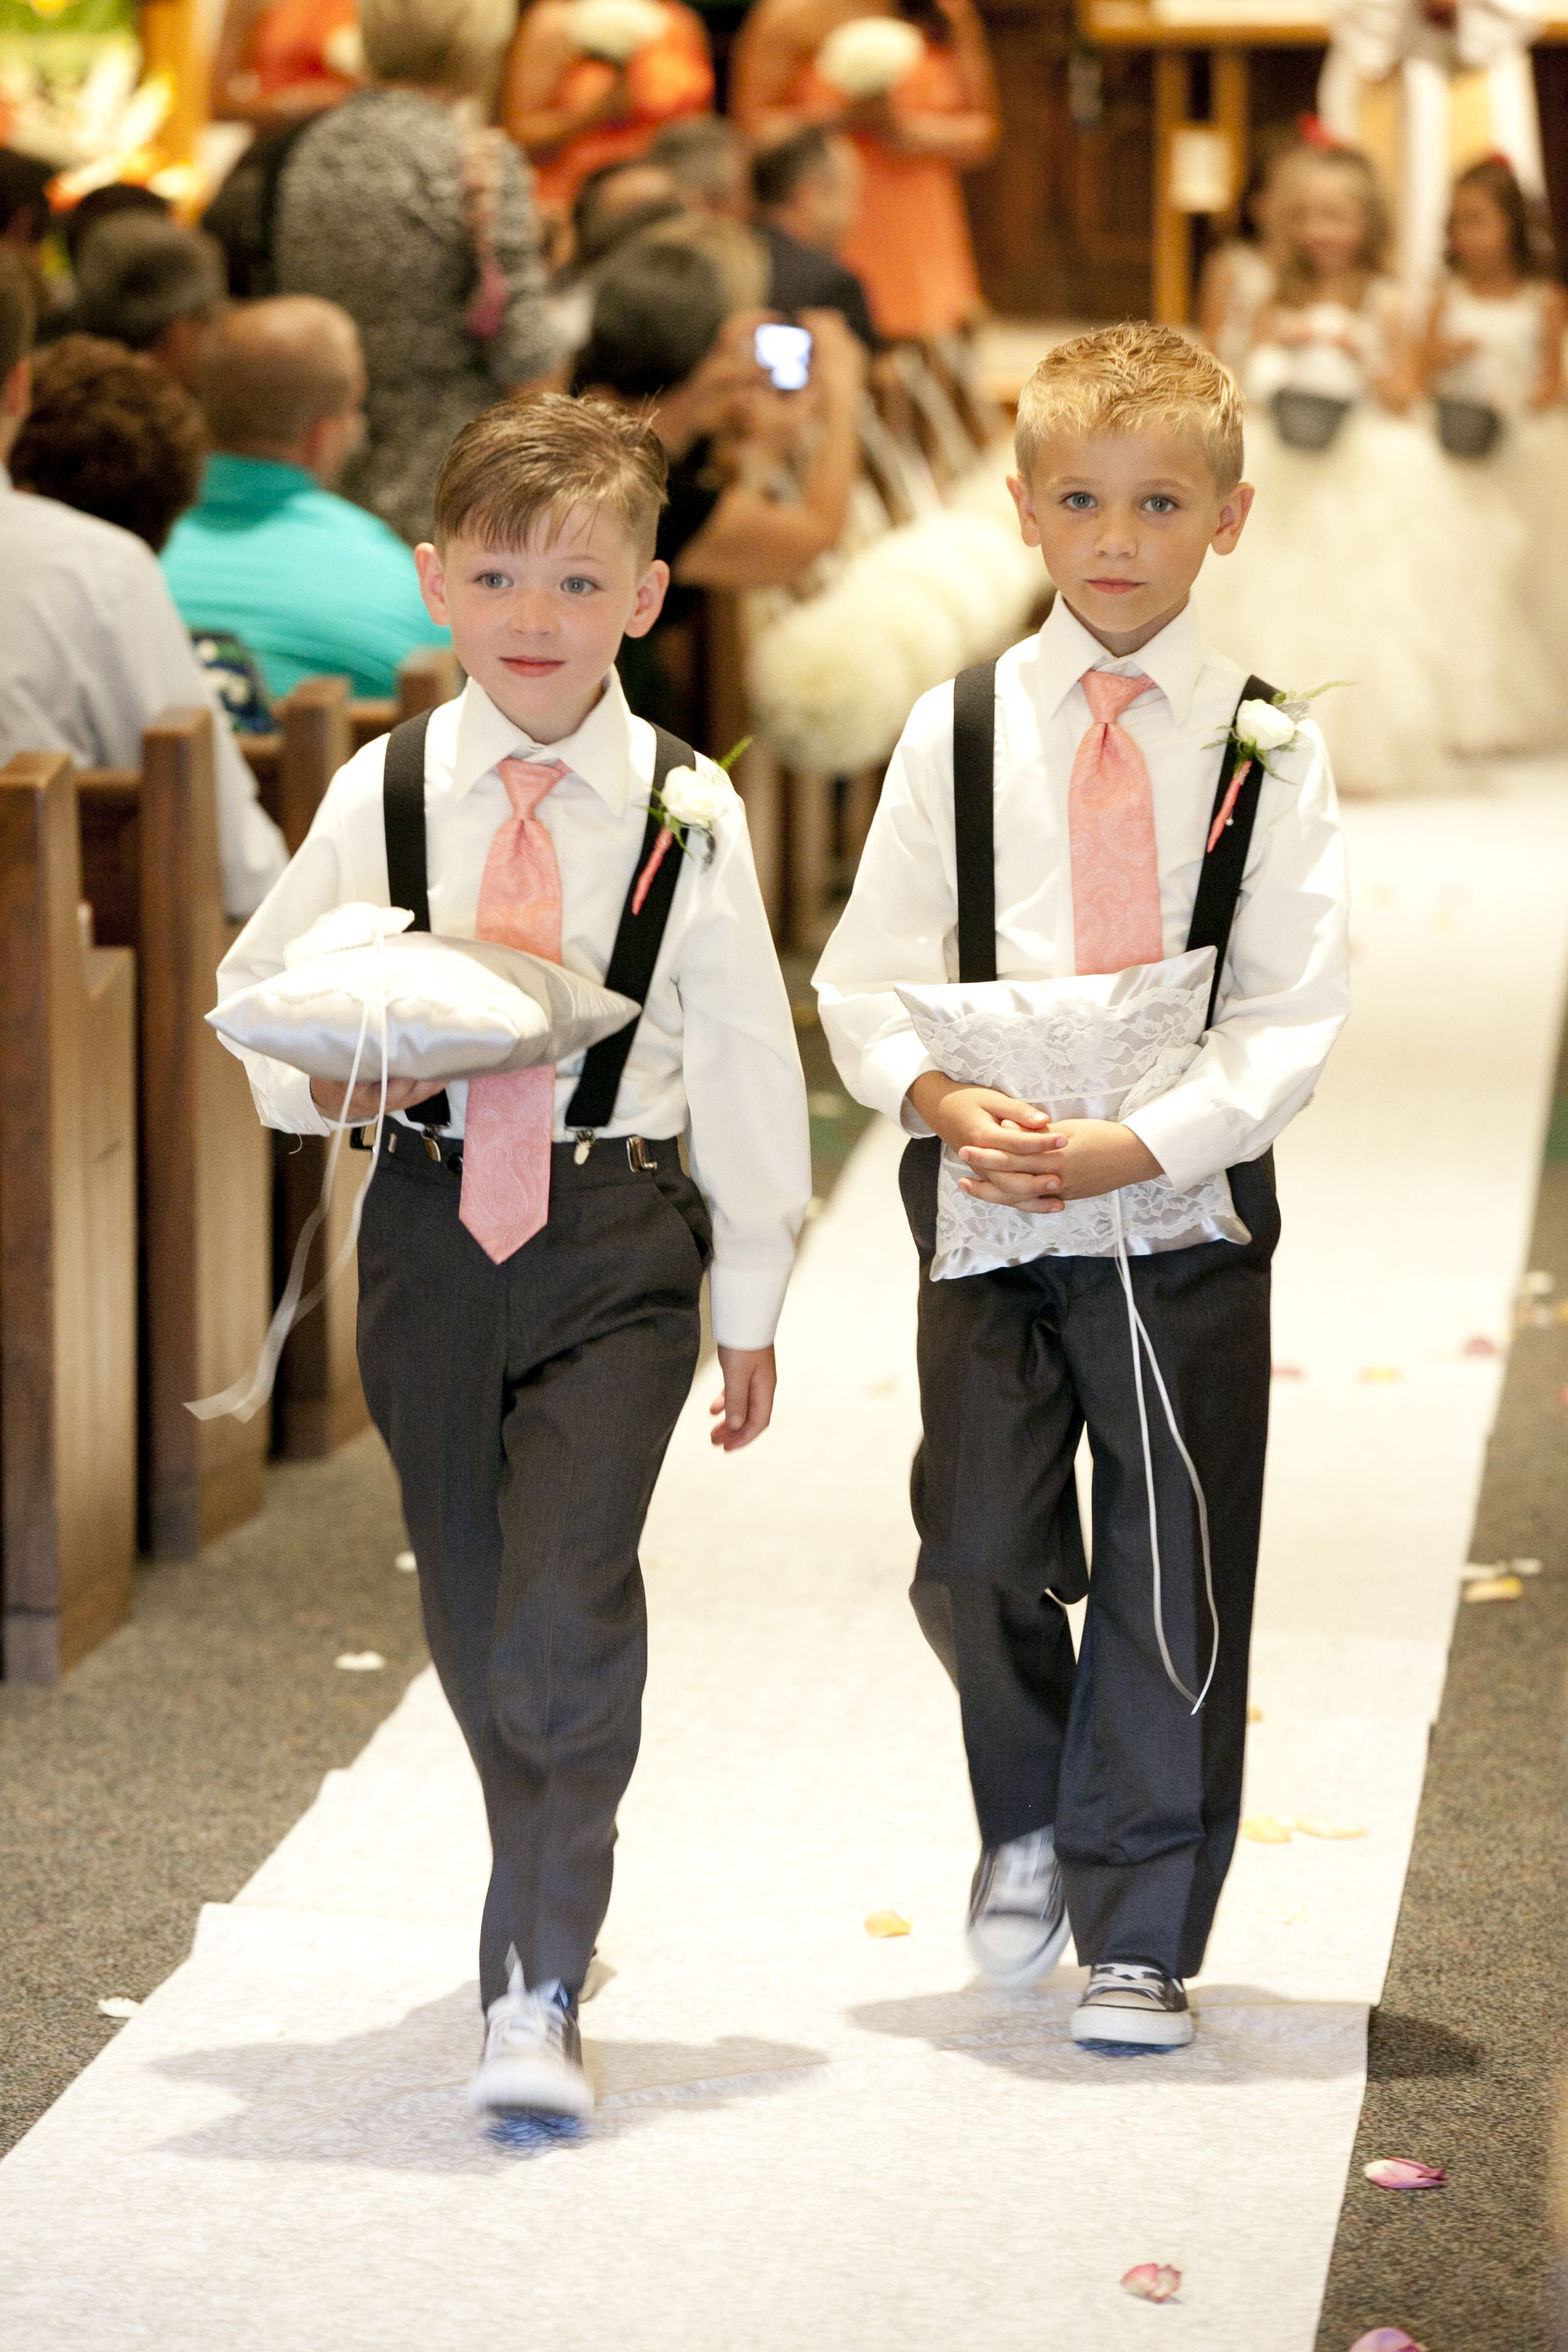 7f26578b494d1 Ring bearers, suspenders, chucks, coral and grey | Our Wedding ...